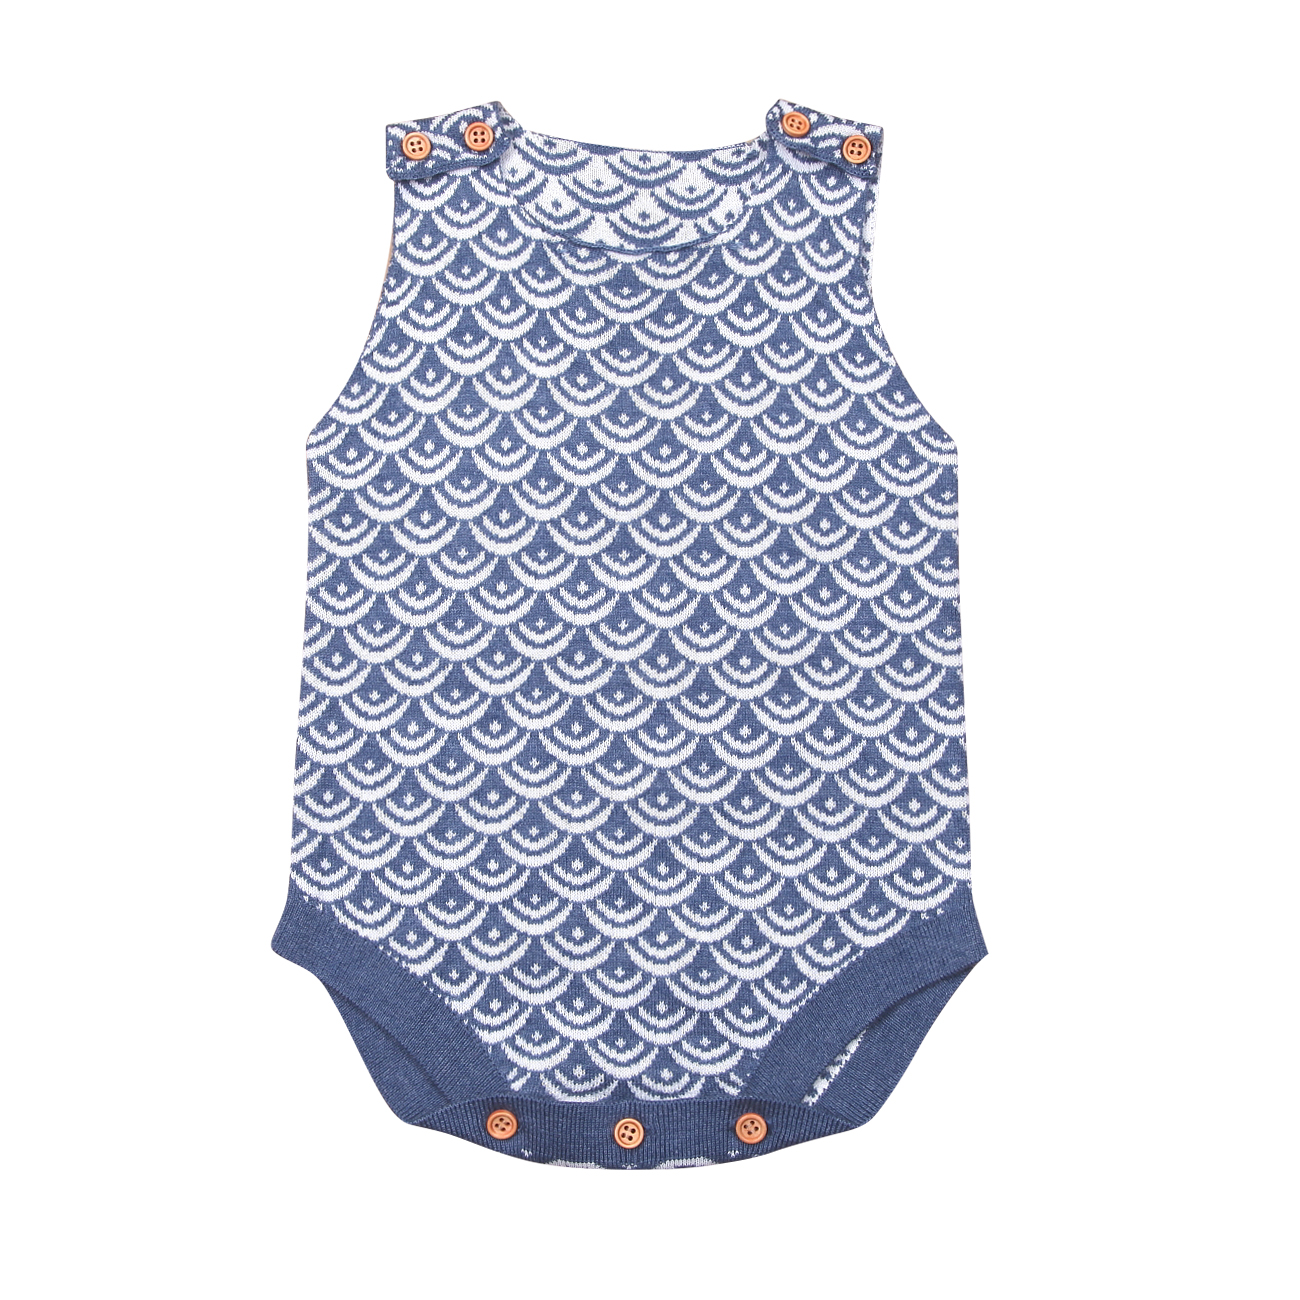 Emmbaby New Brand Newborn Infant Baby Boy Girl Knitted  Jumpsuit Sleeveless Bodysuit Outfits